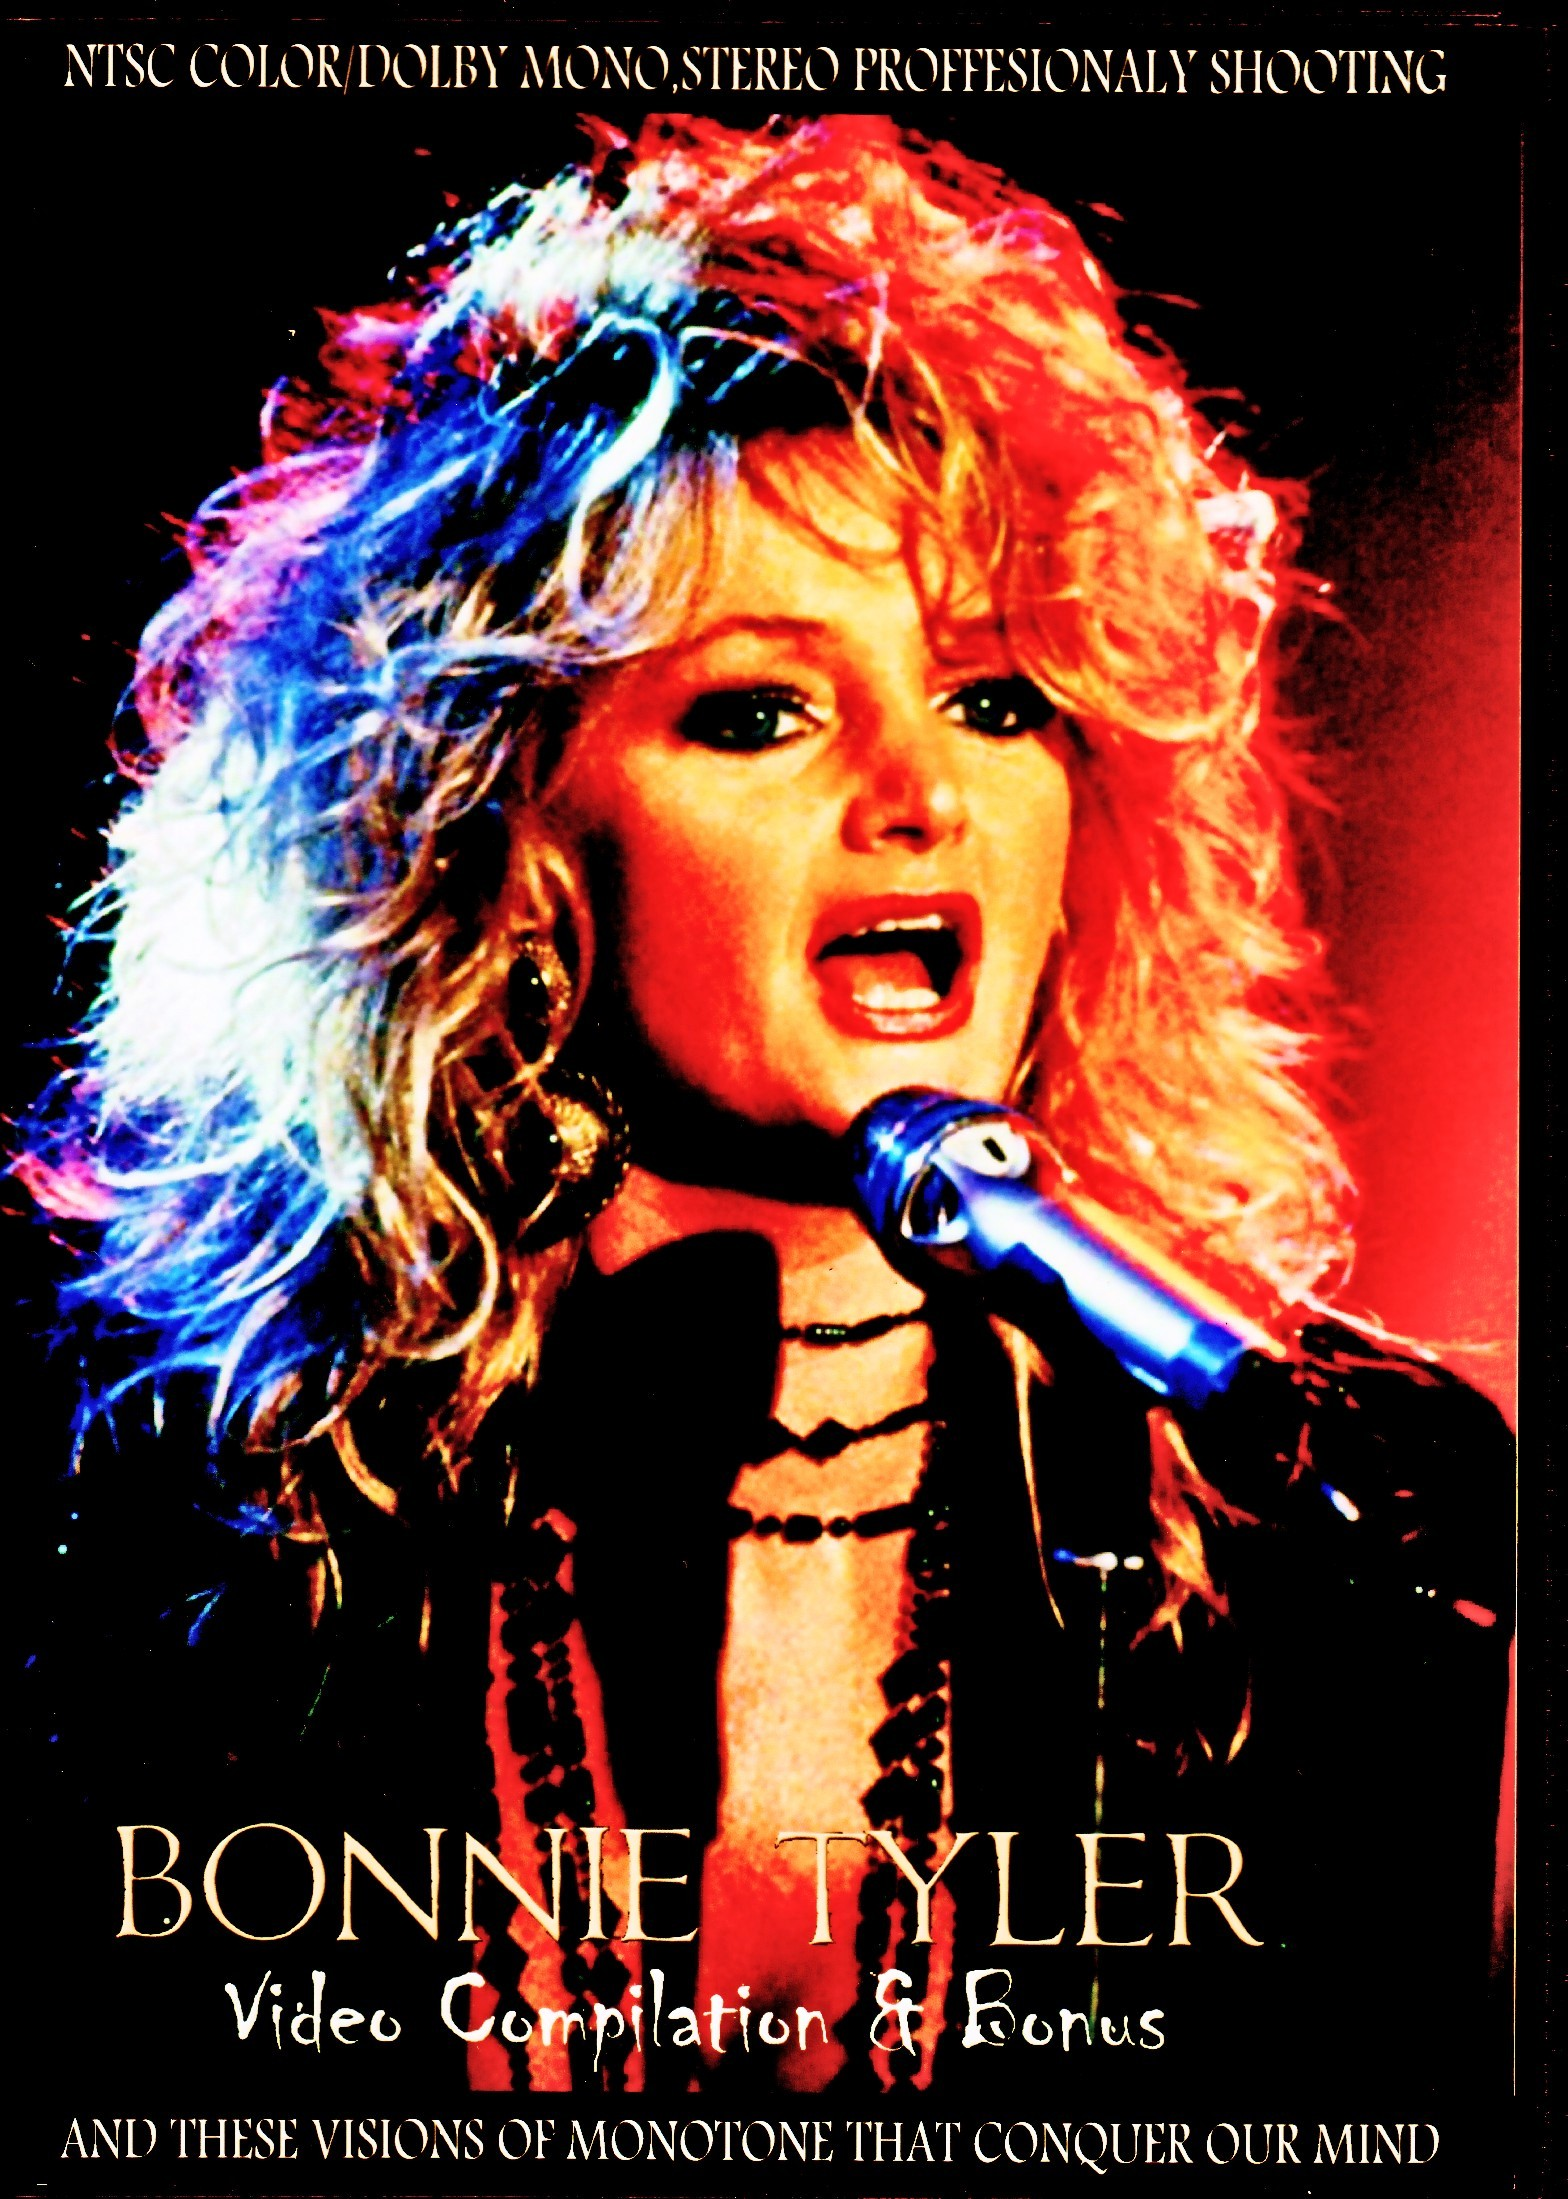 Bonnie Tyler ボニー・タイラー/Video Compilation & more